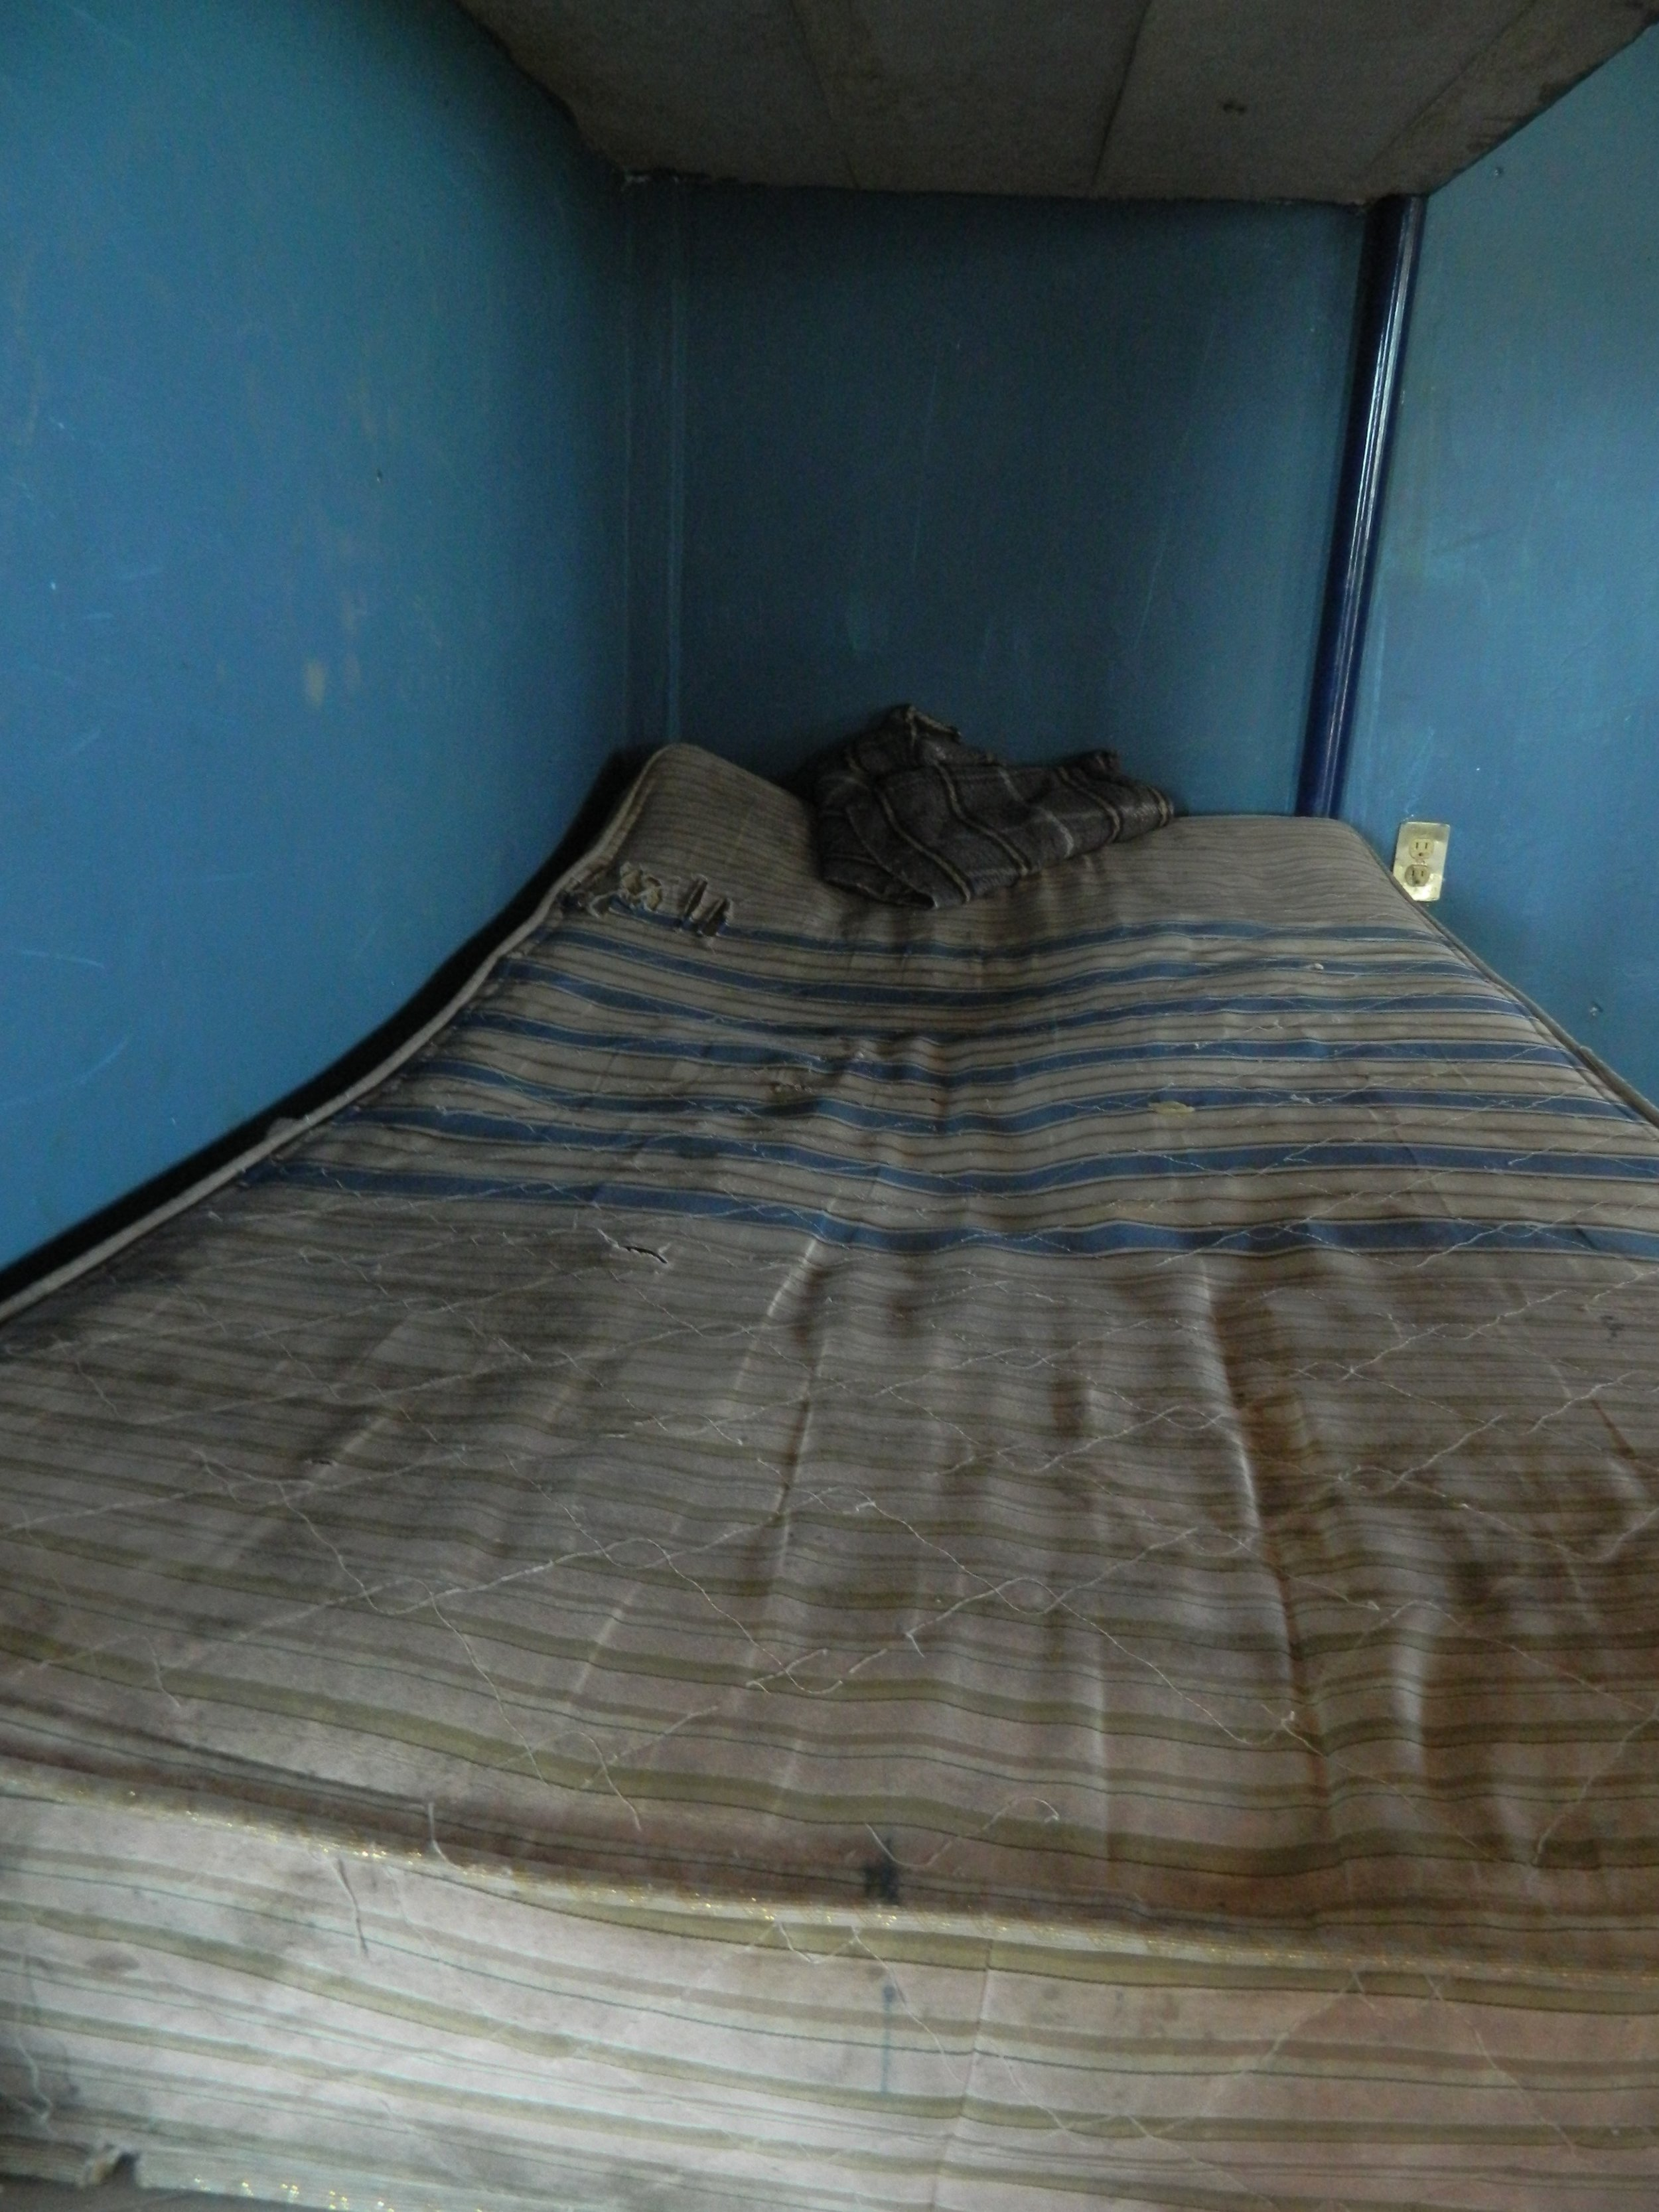 One of the mattress's